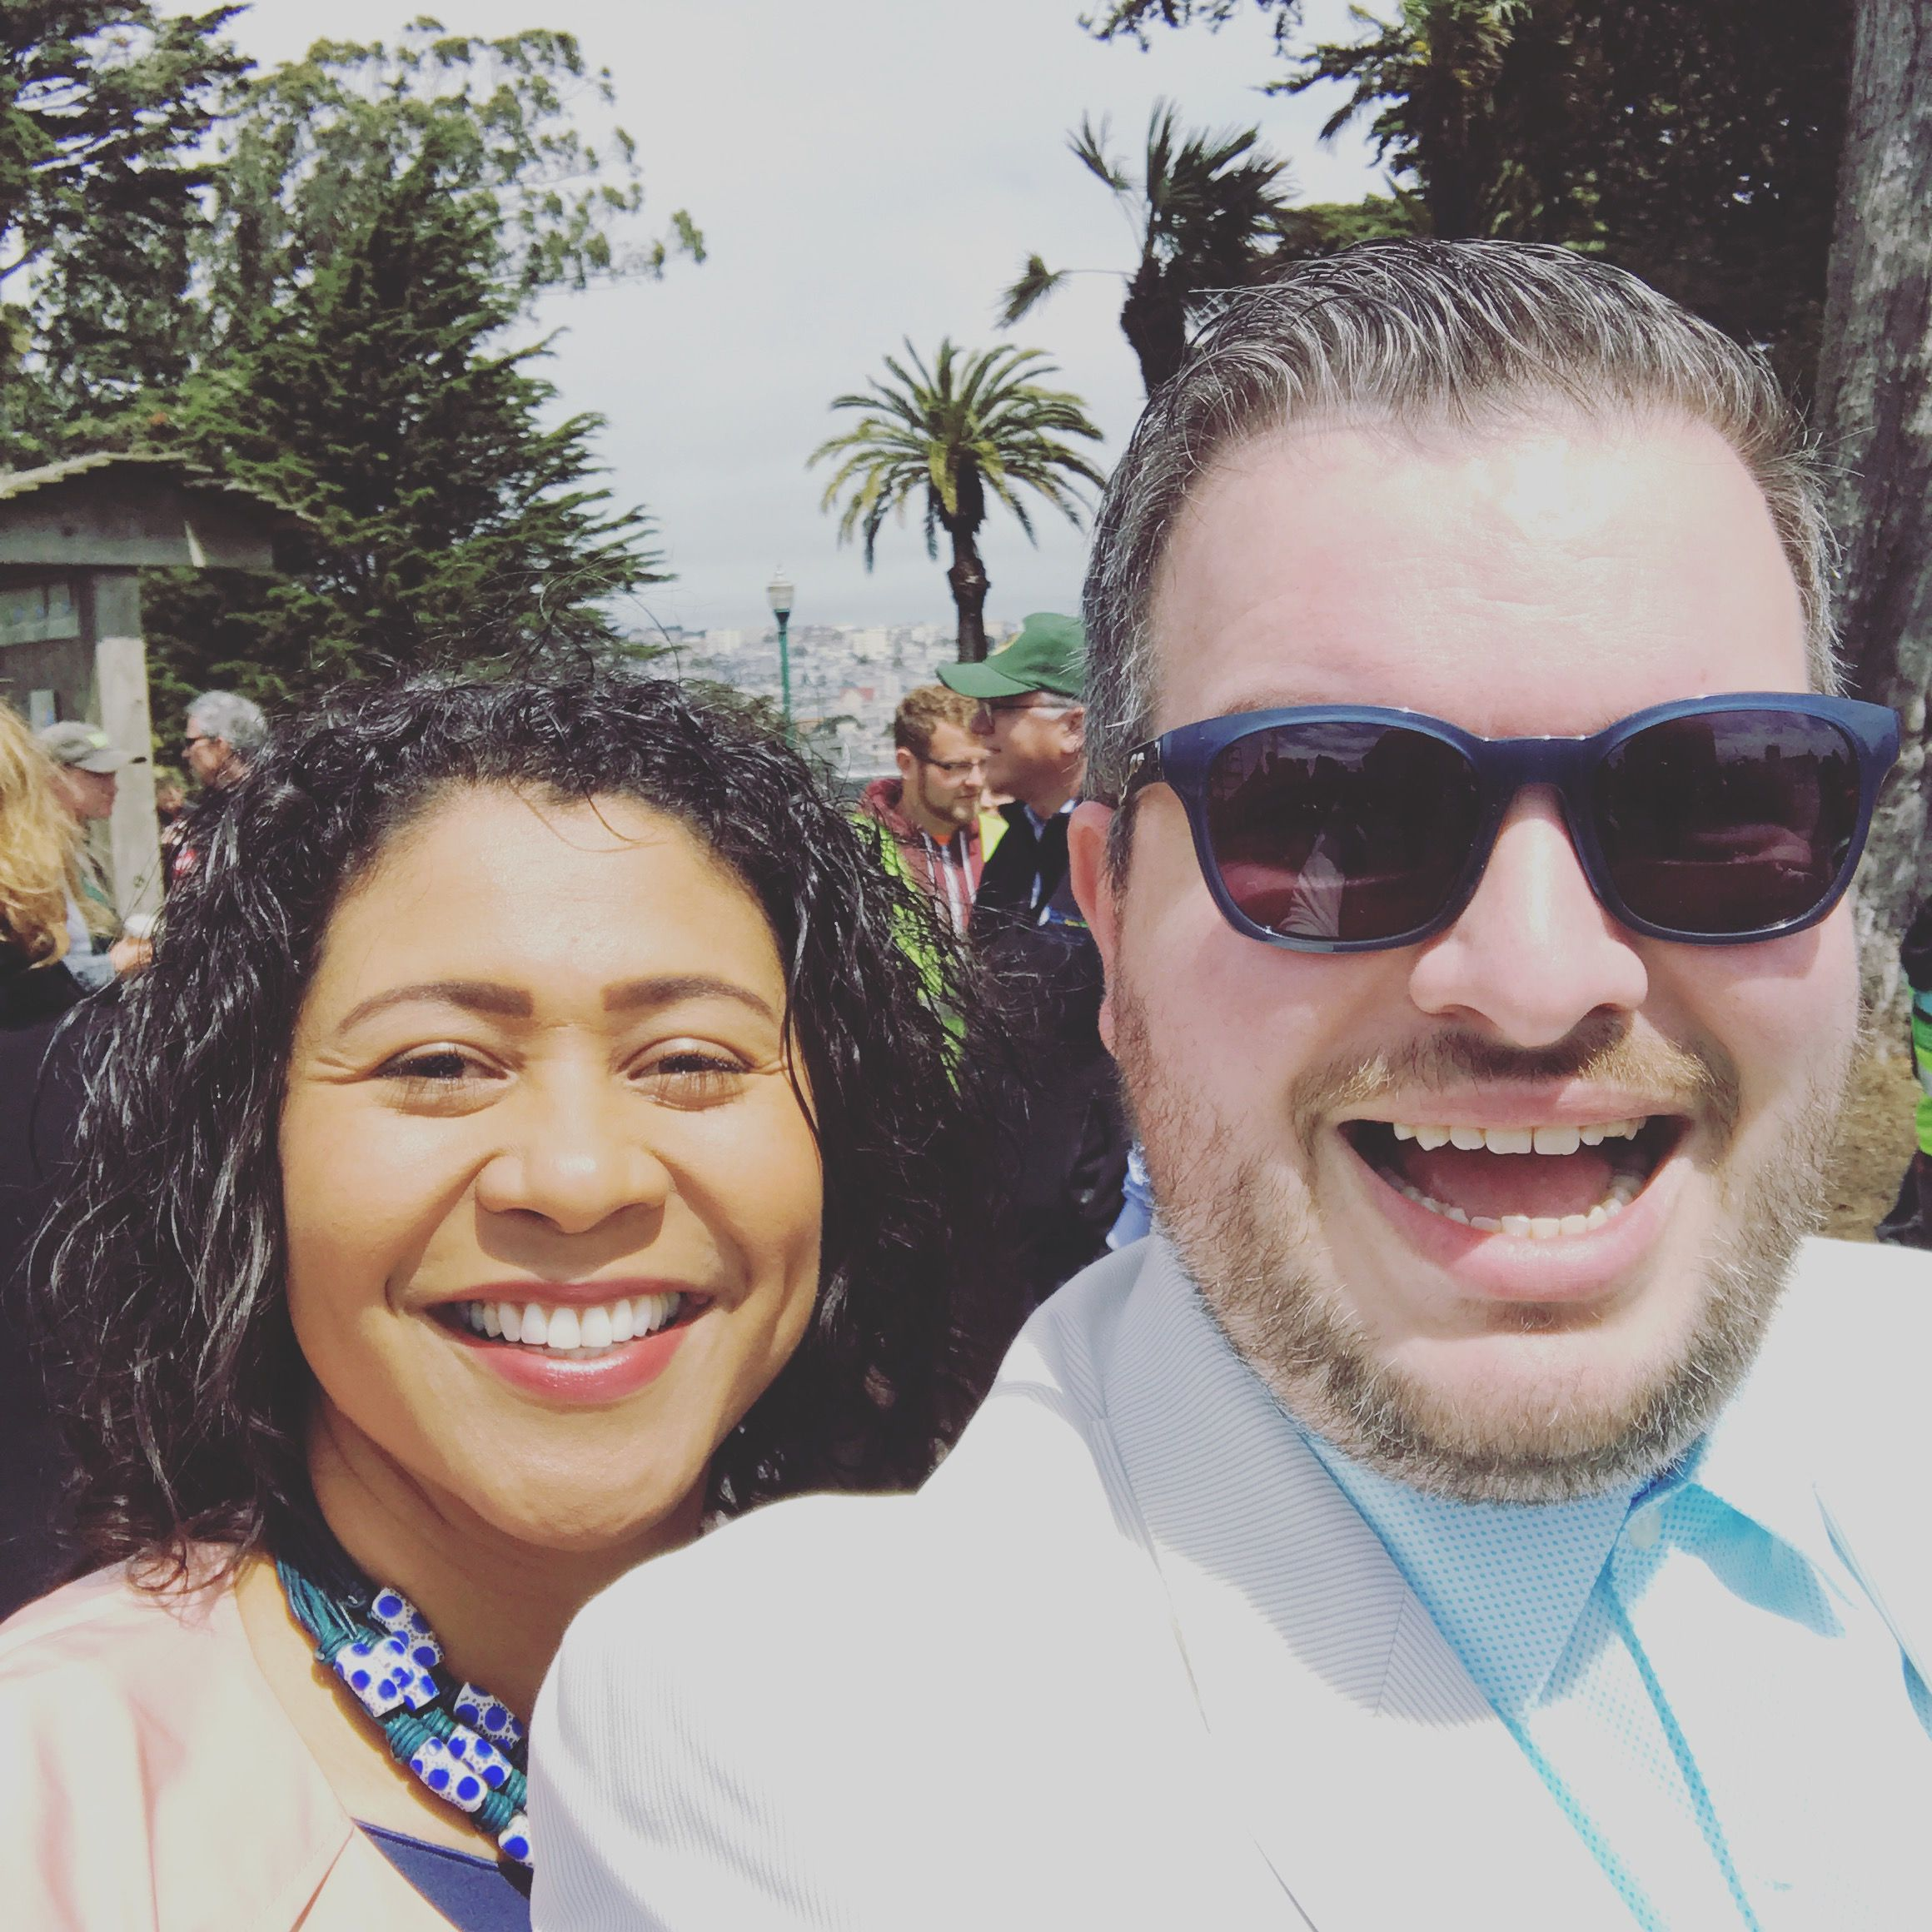 London Breed Declares Victory In Tight Mayoral Race Visit San Francisco Racing London